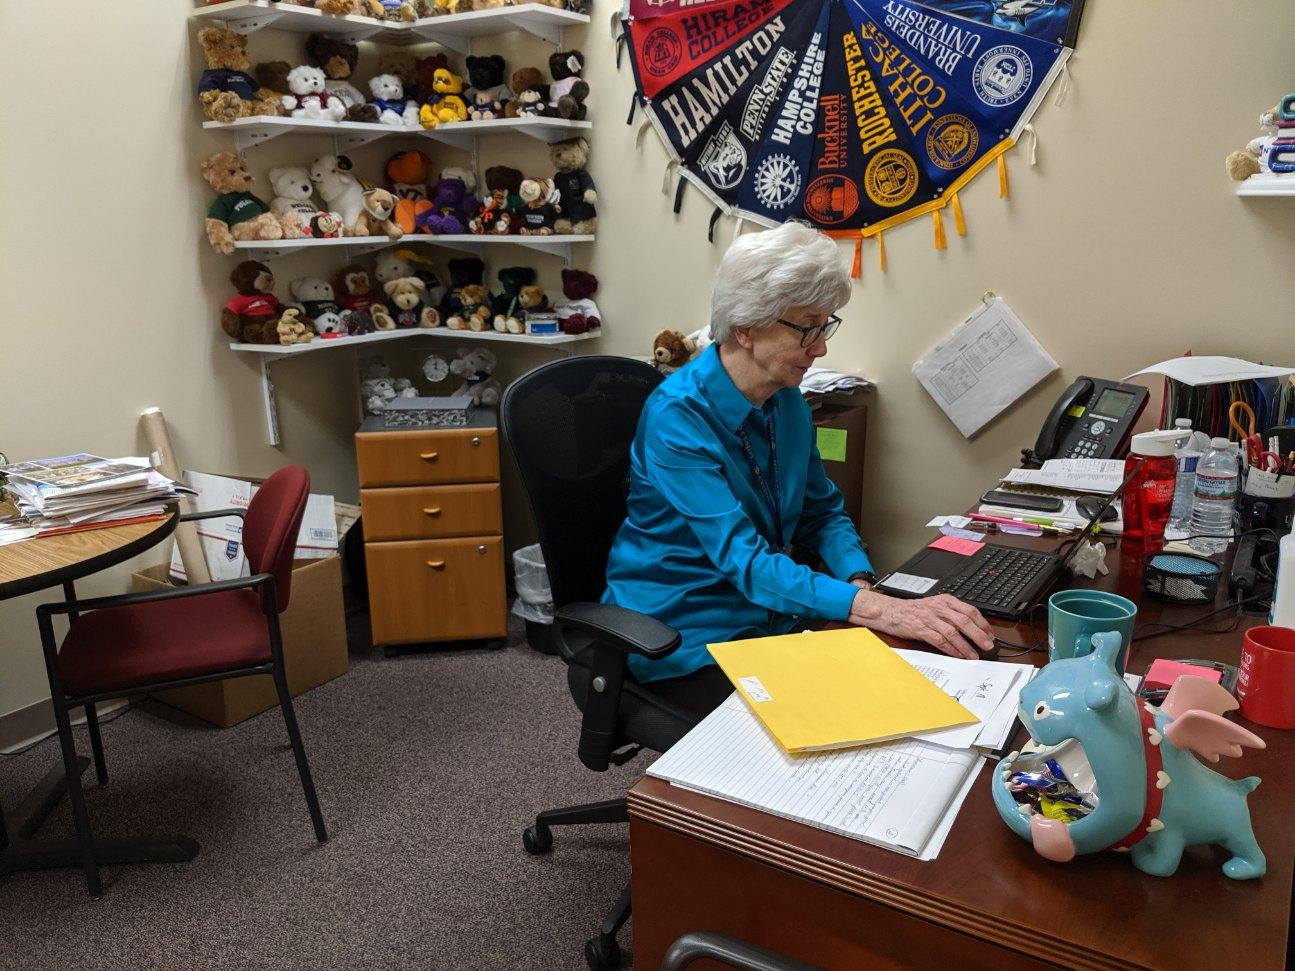 Here's a look at the daily life of a college counselor during the busy application process of the Fall.